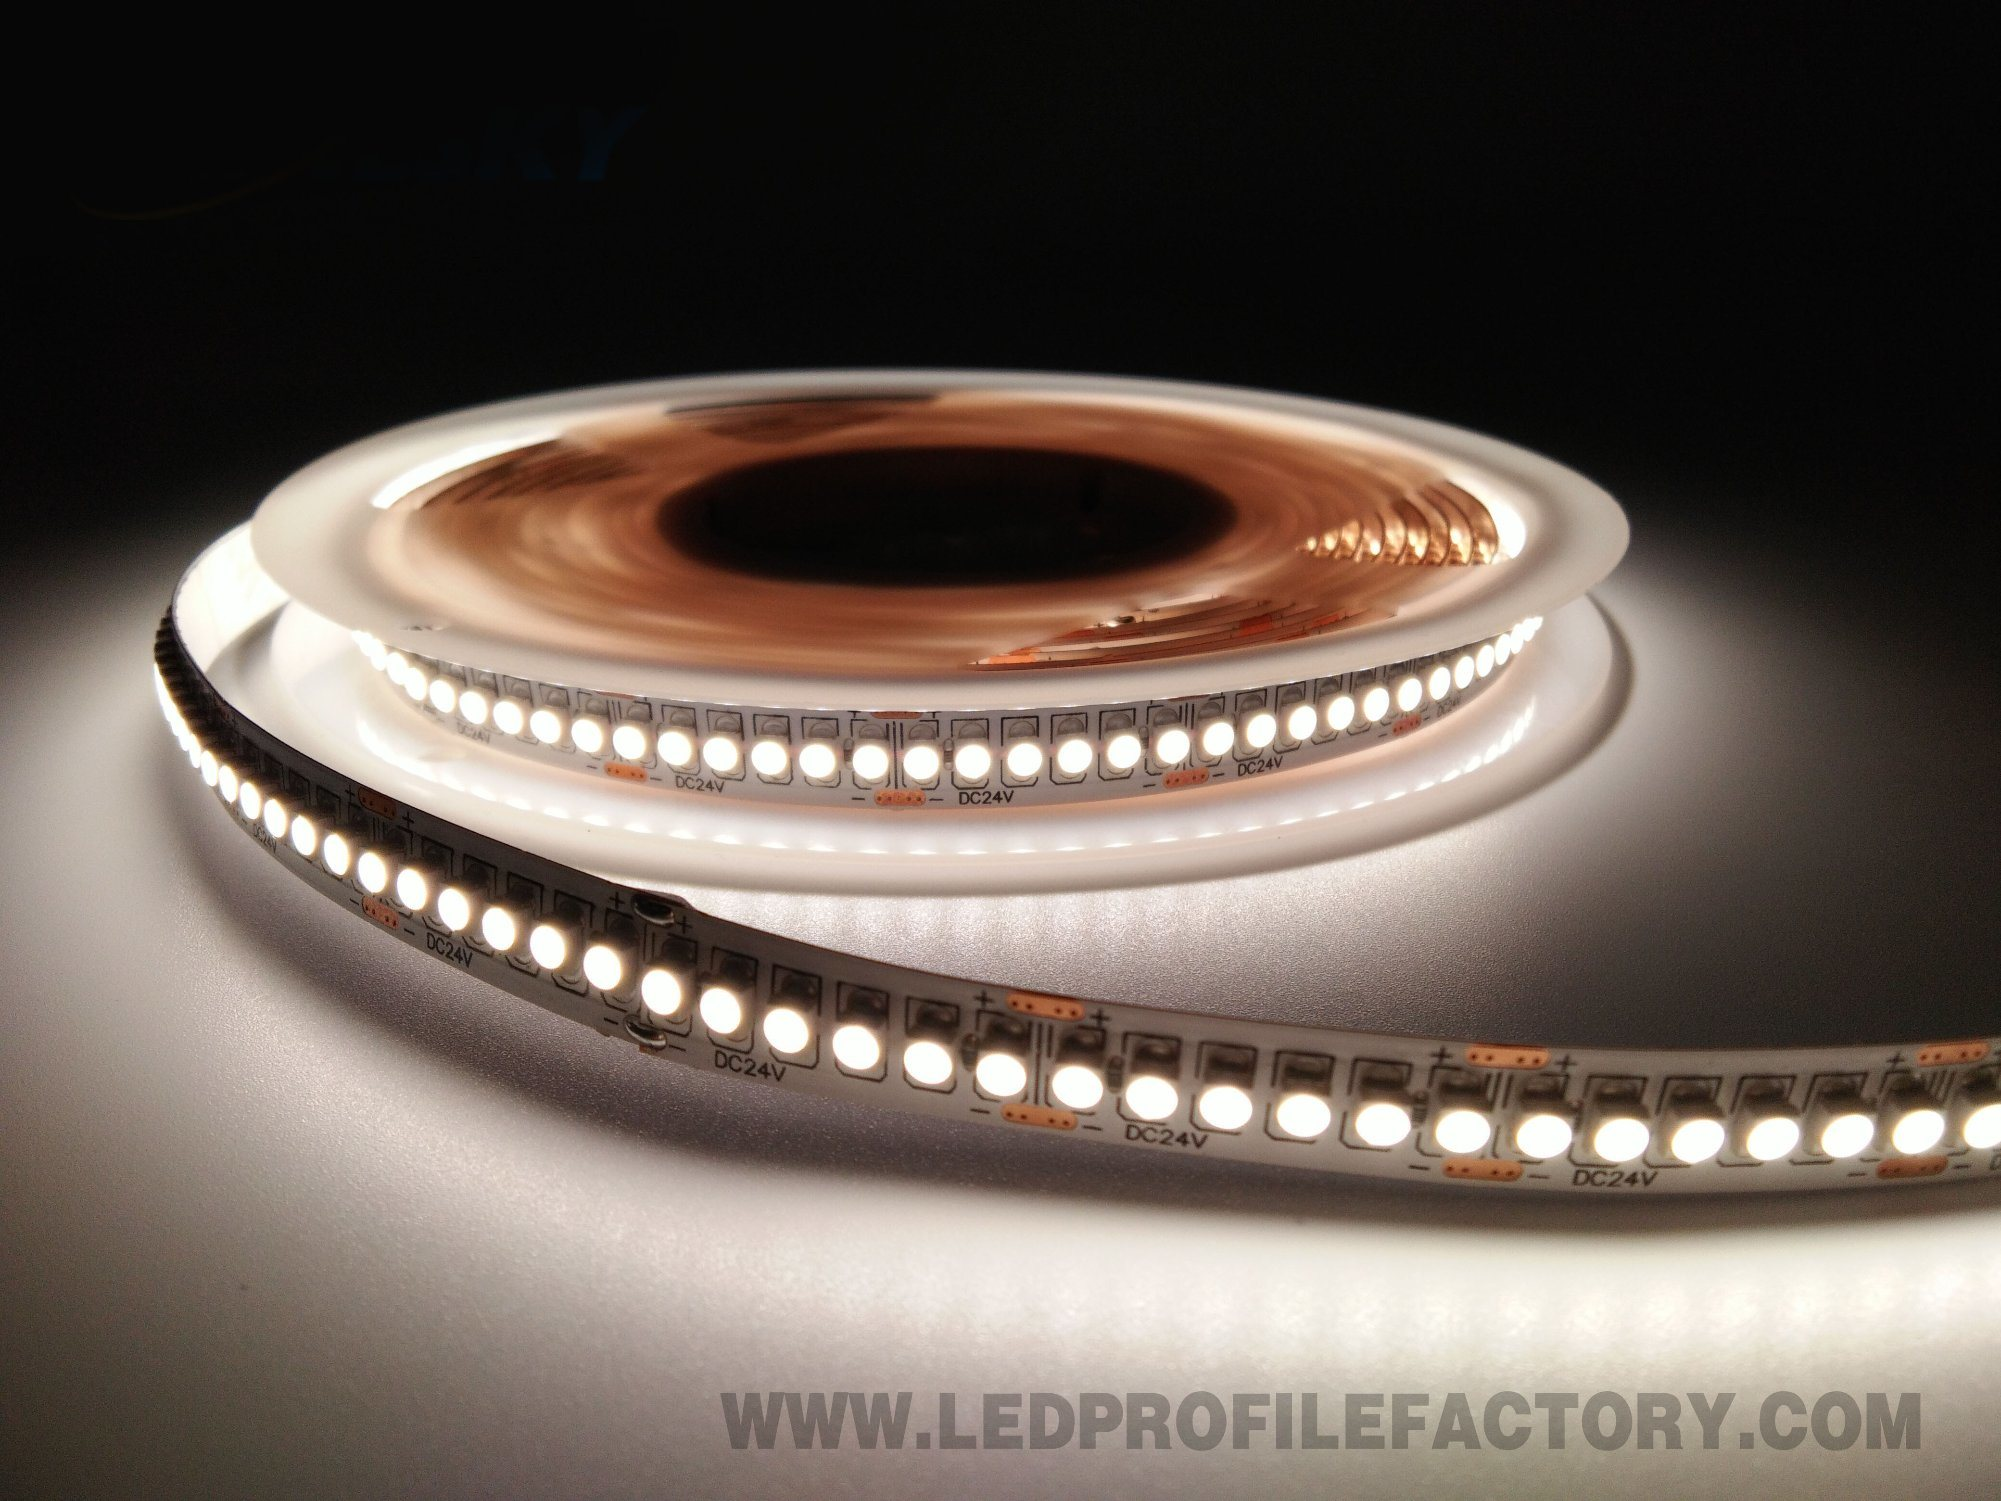 LED Aluminium Profile Linear Light for 2835 LED Strip